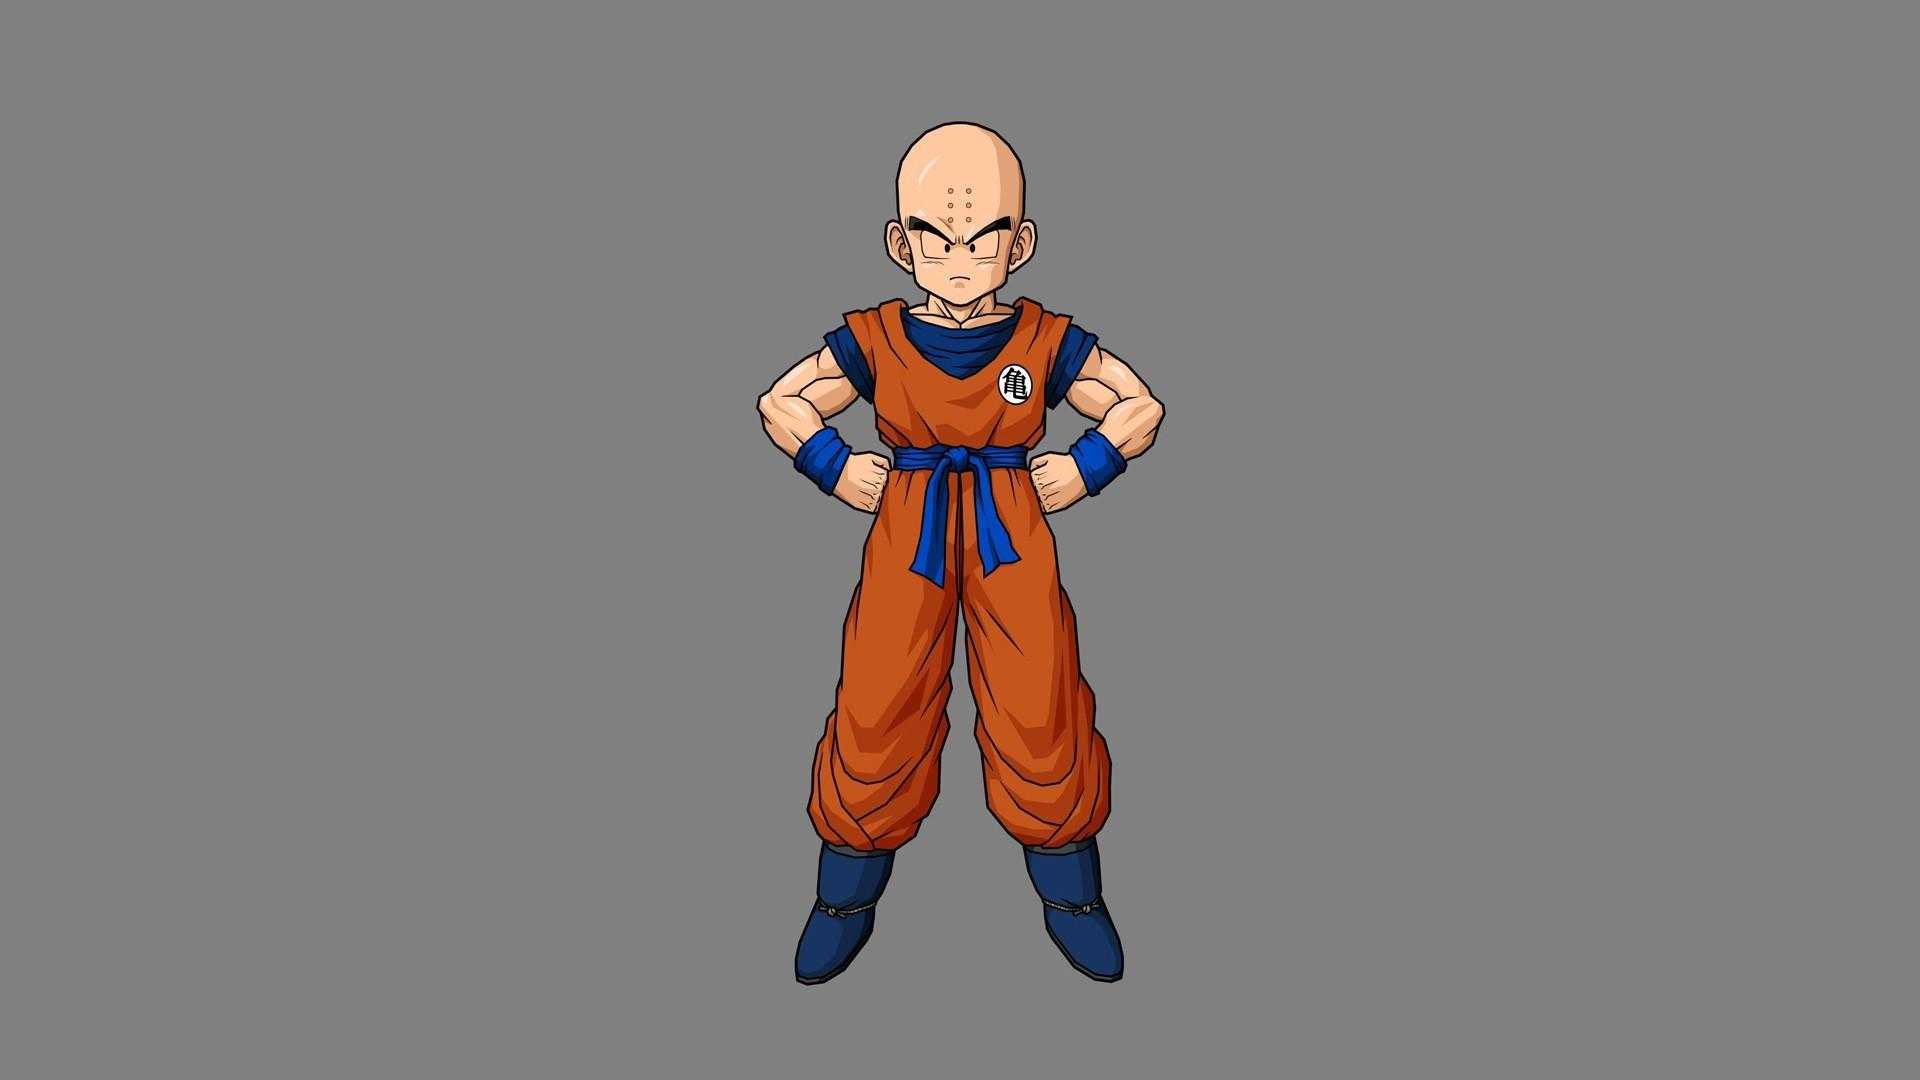 Dragon ball krillin wallpaper 14126 1920x1080